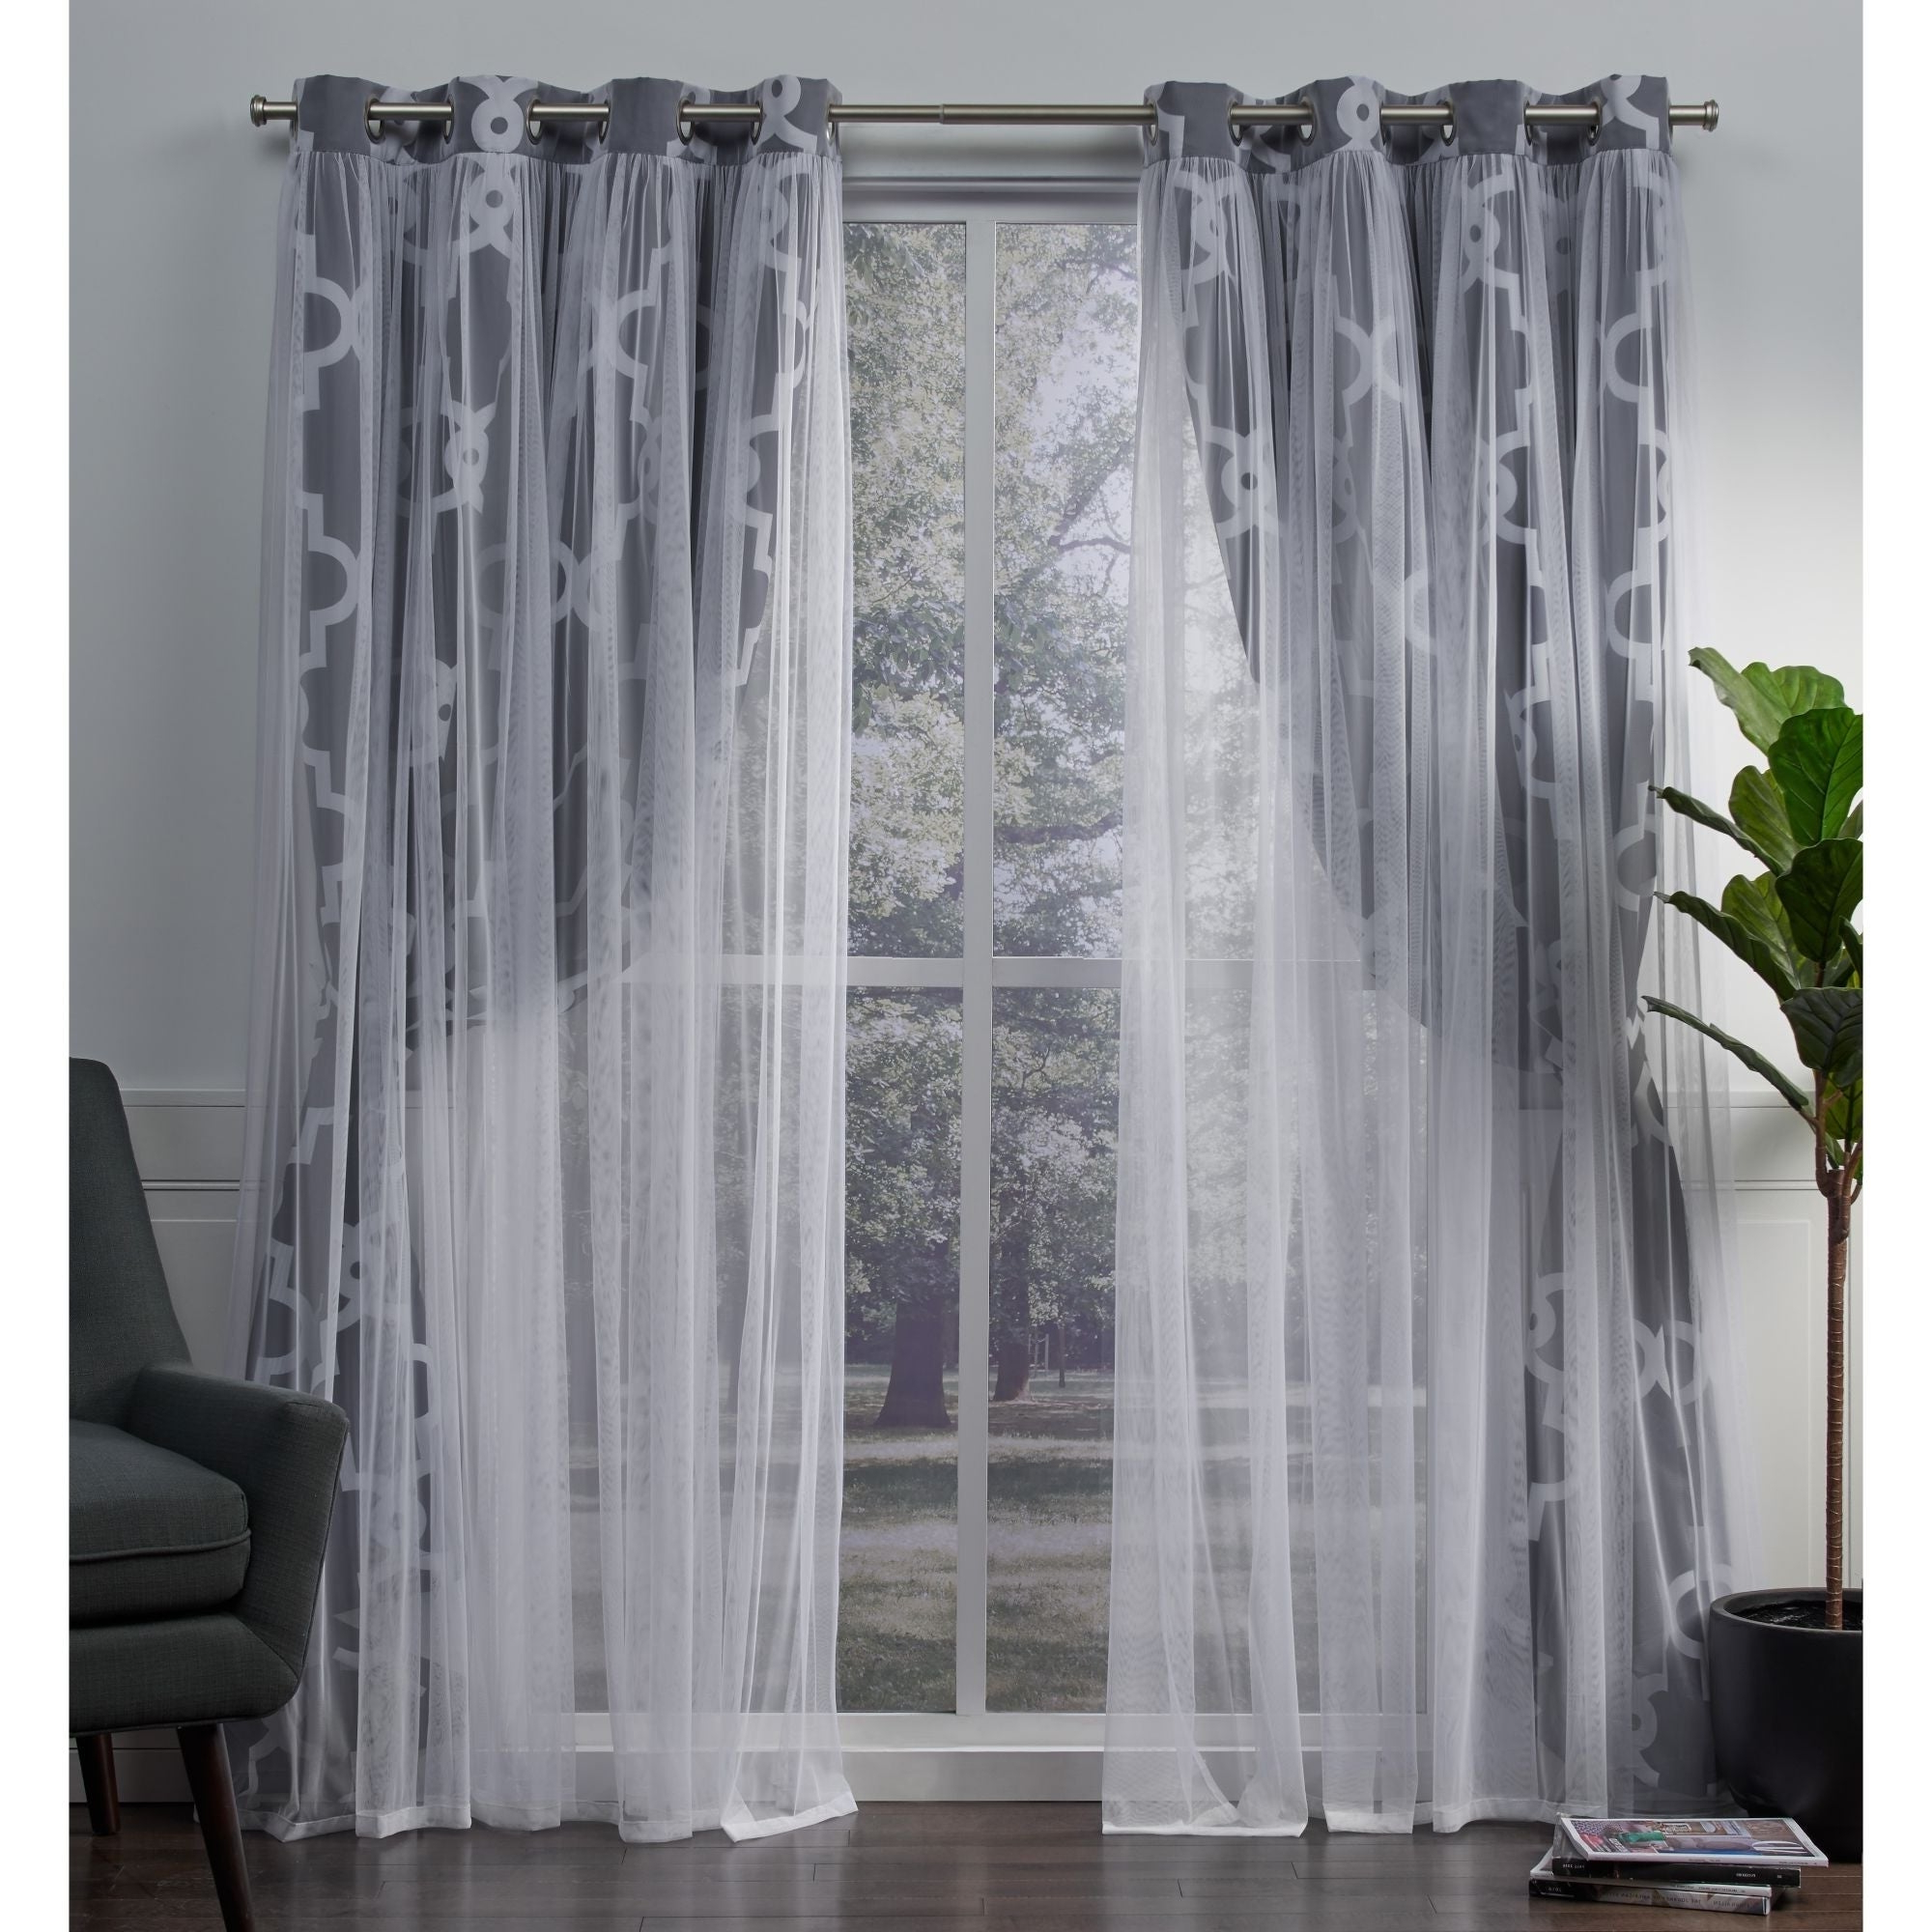 Famous Ati Home Alegra Thermal Woven Blackout Grommet Top Curtain Panel Pair Intended For Woven Blackout Grommet Top Curtain Panel Pairs (Gallery 19 of 20)